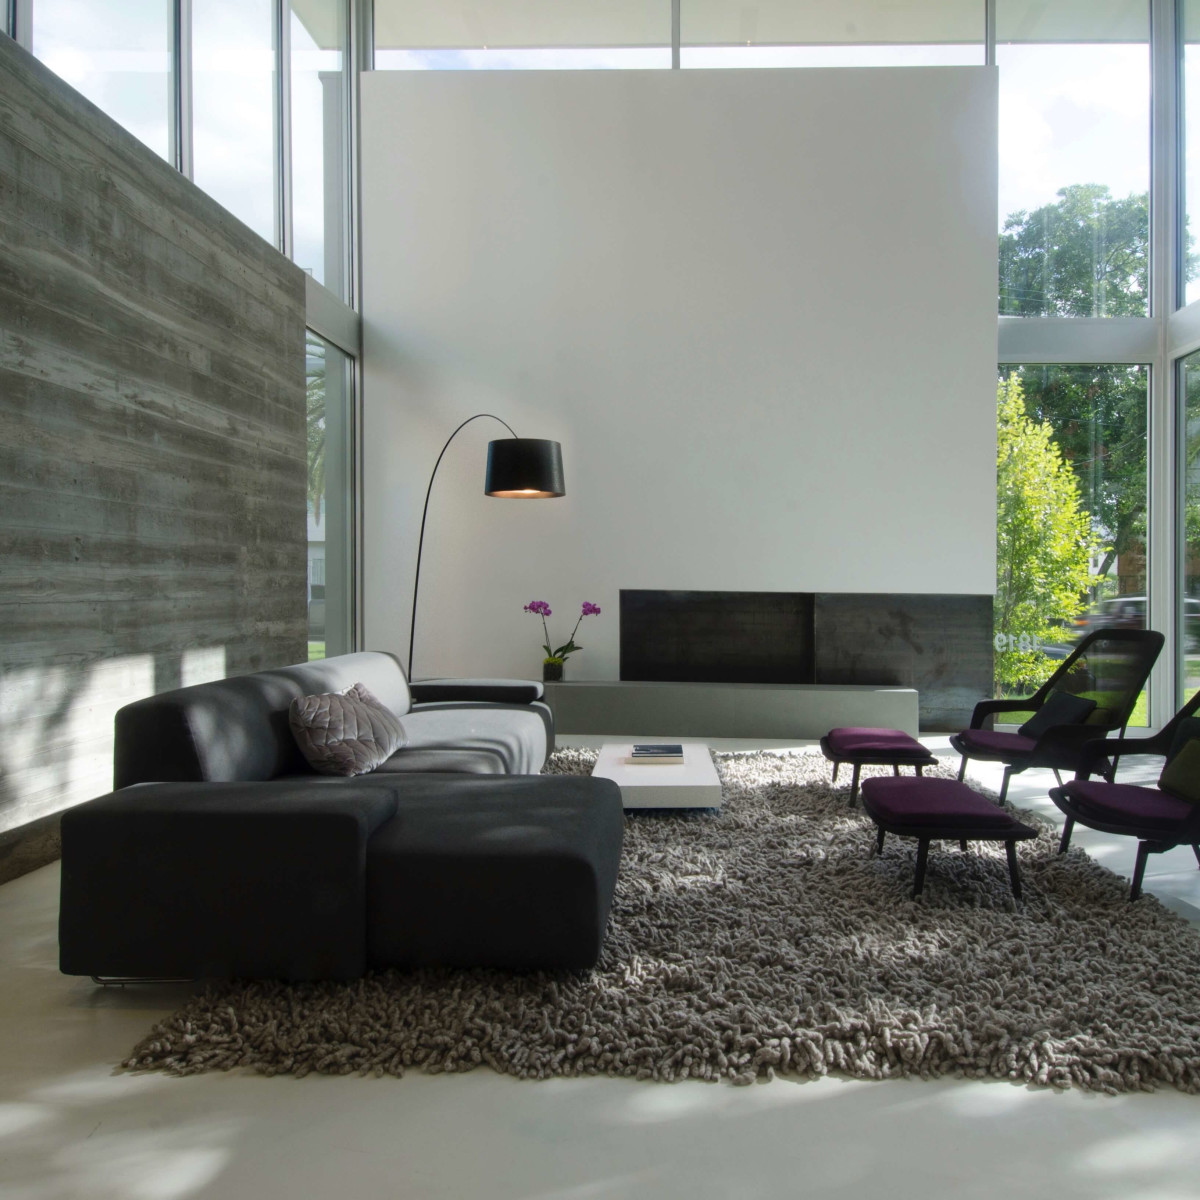 Modern Home Tour 9/2016, Intexture Tripartite